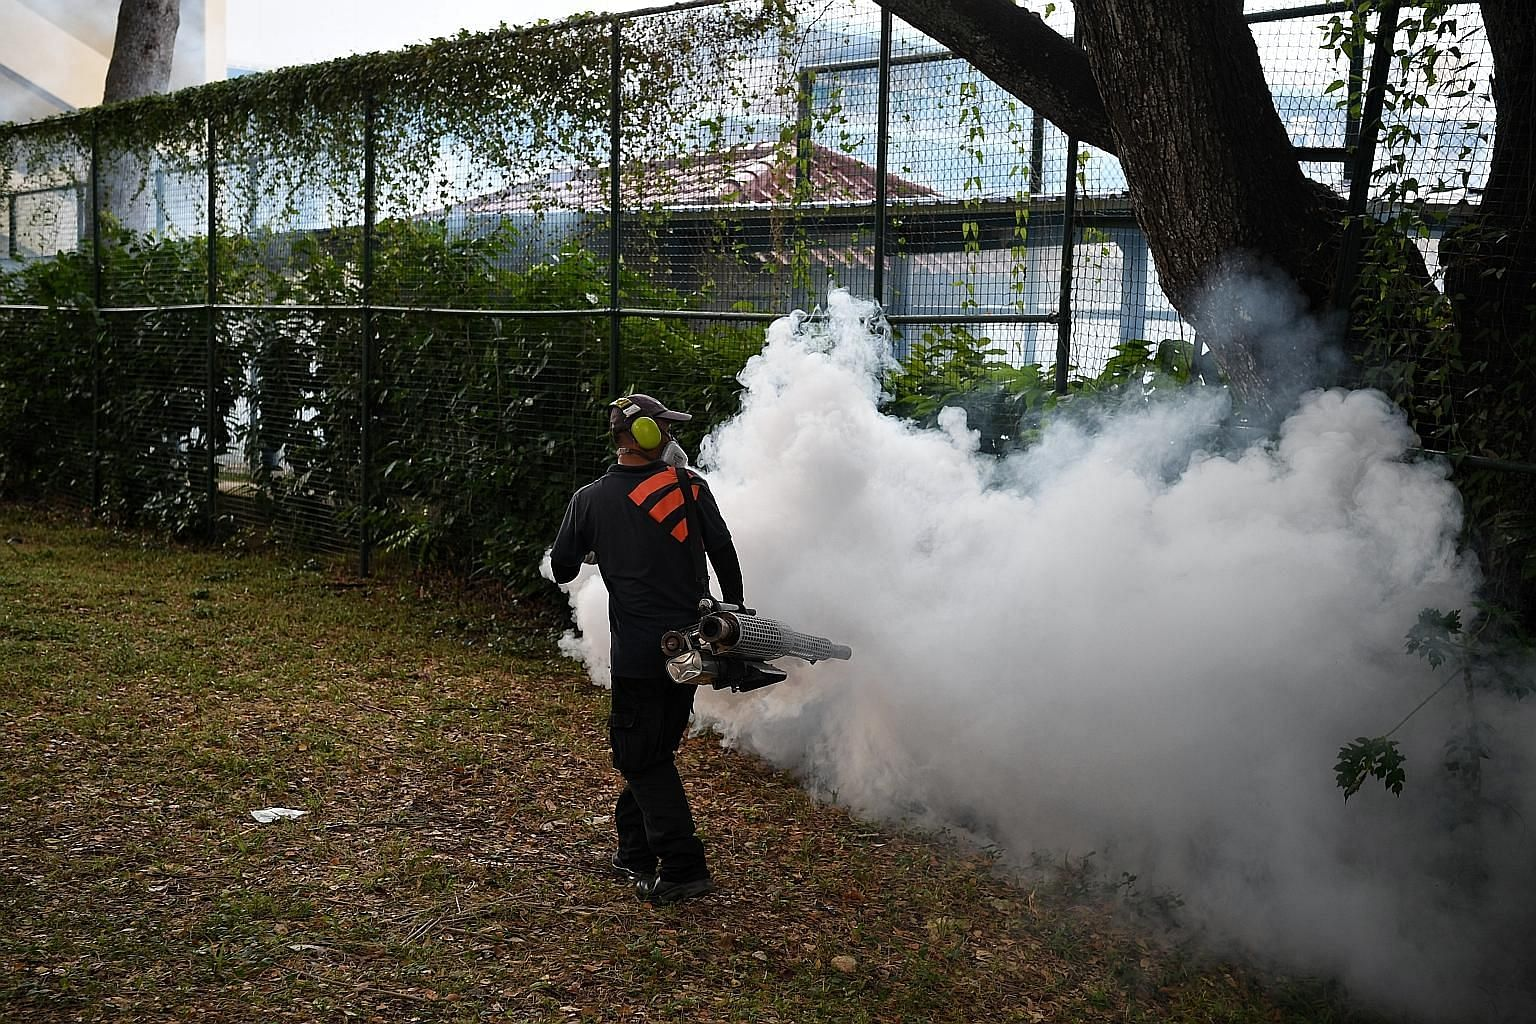 Fumigation is one of the measures taken against dengue. Others include intensive enforcement and inspection regimes, which involved 107,000 inspections of homes, as well as the destruction of about 5,300 mosquito breeding habitats in May and June alo